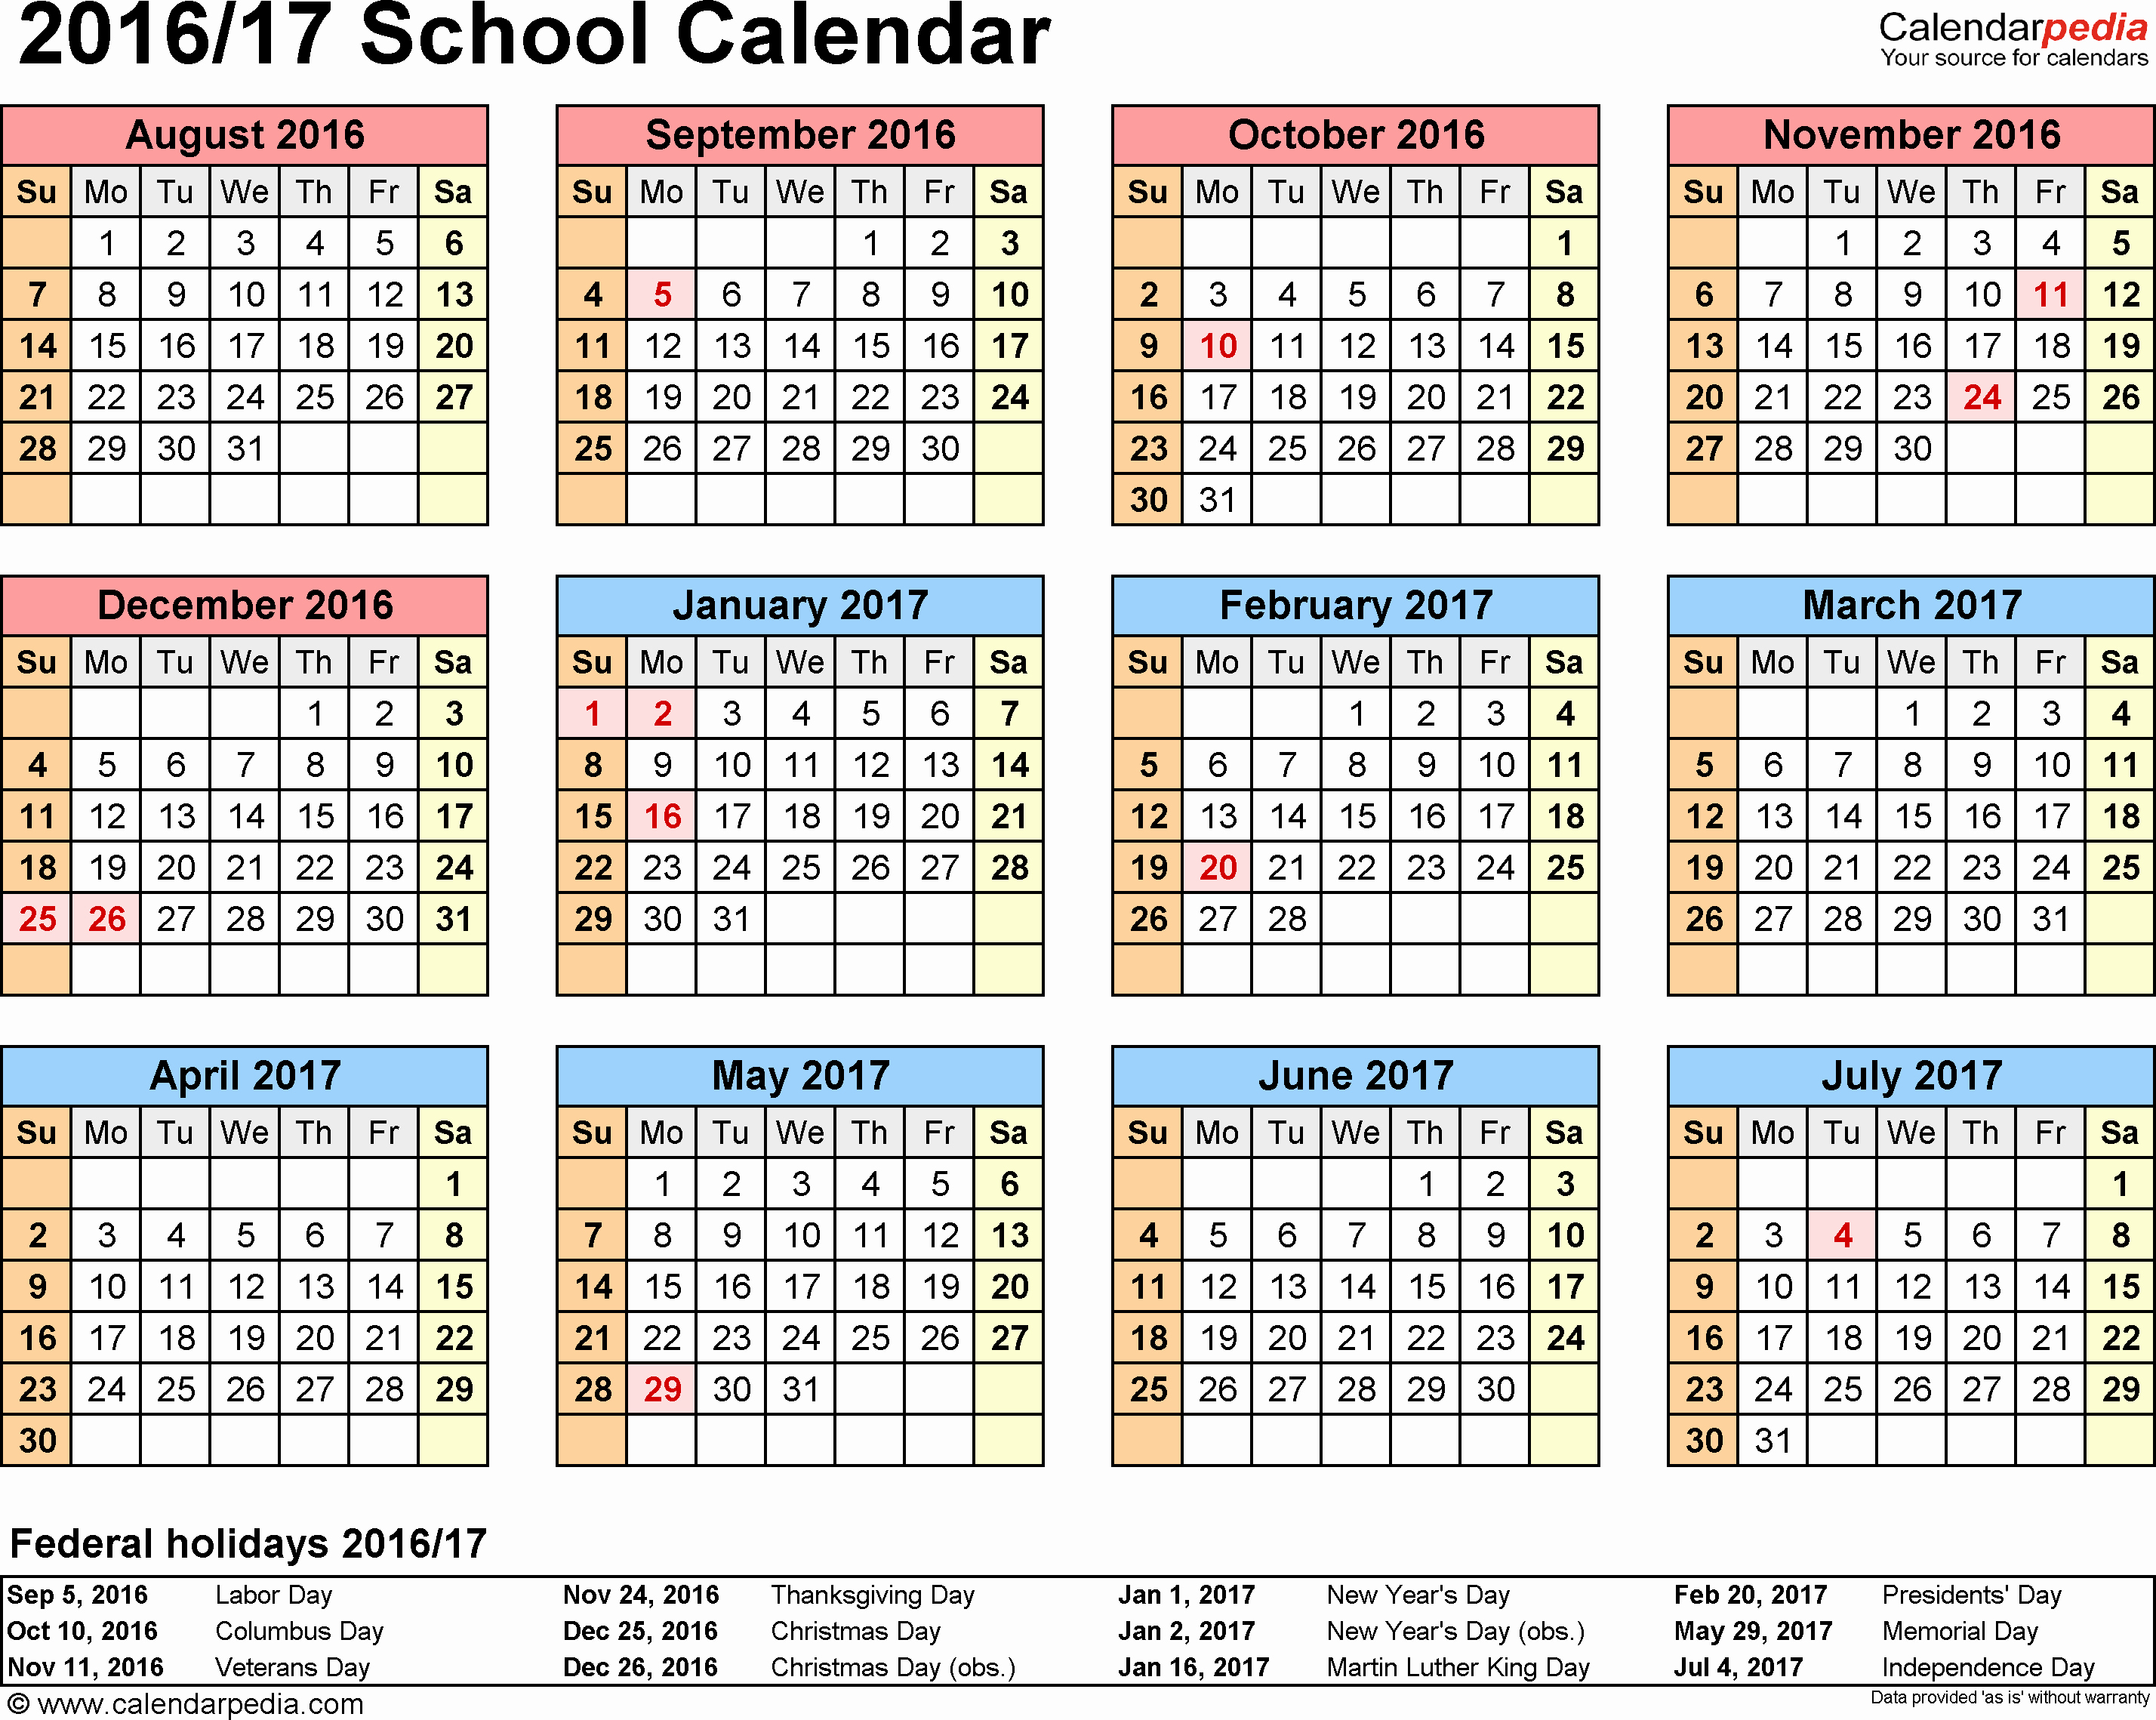 Monthly Calendar 2016-17 Elegant School Calendars 2016 2017 as Free Printable Pdf Templates